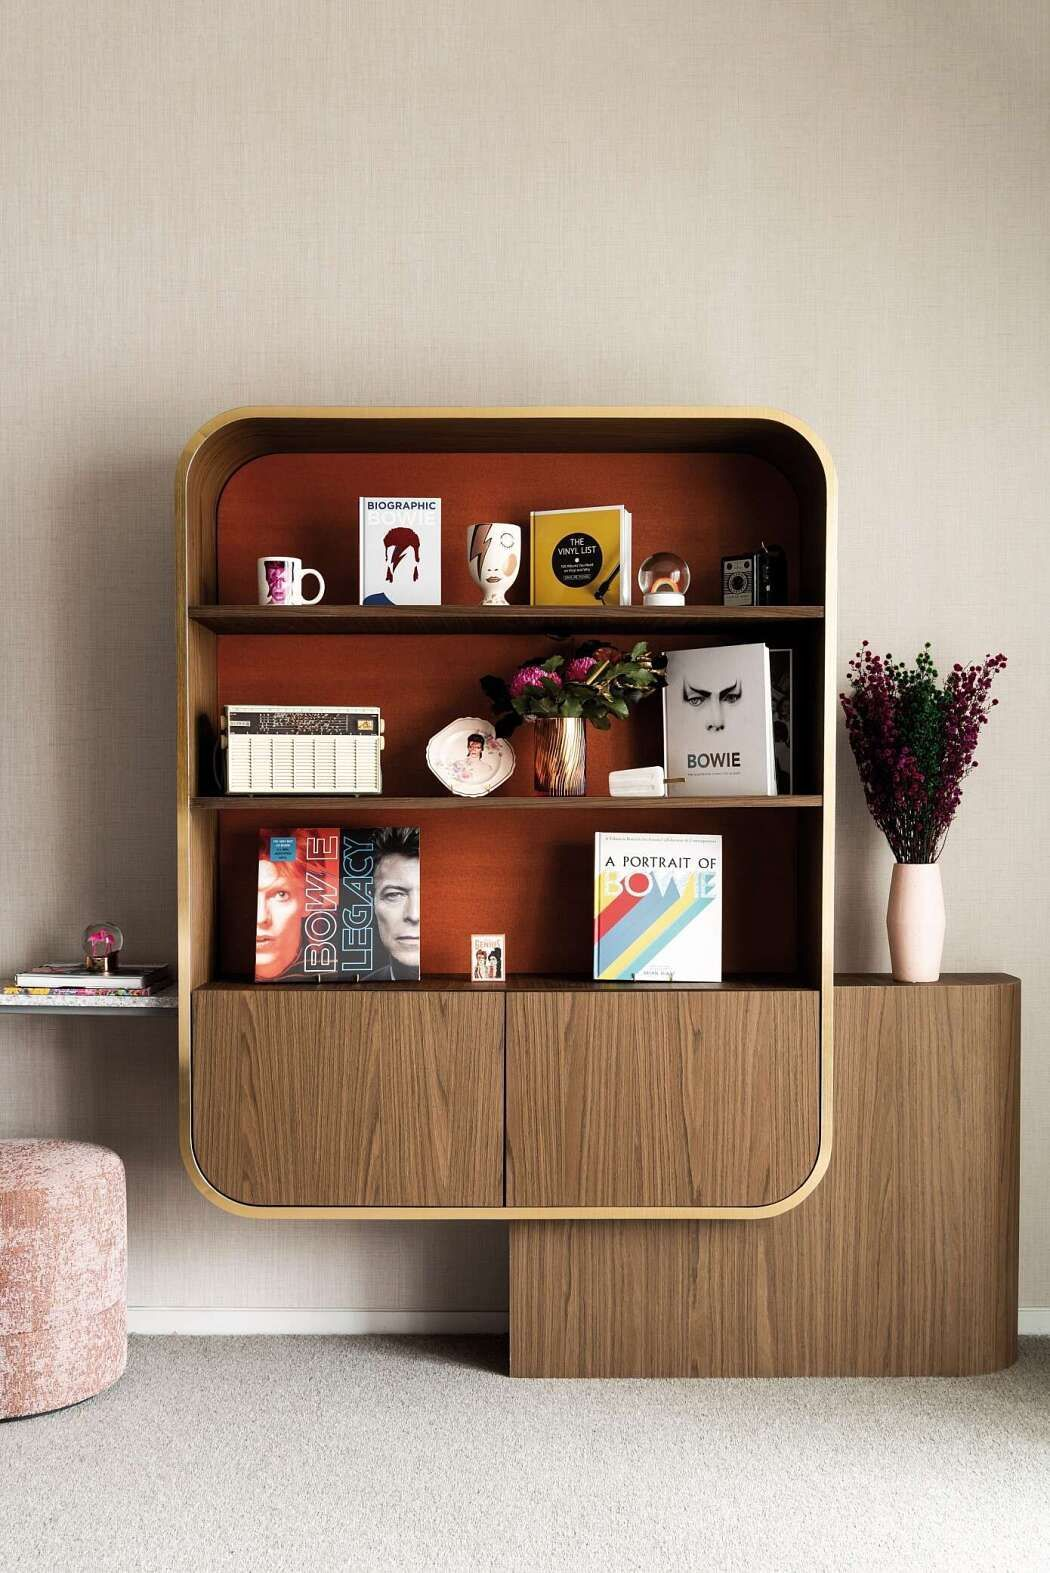 Home Interior Scandinavian Ovolo the Valley by Woods Bagot.Home Interior Scandinavian  Ovolo the Valley by Woods Bagot